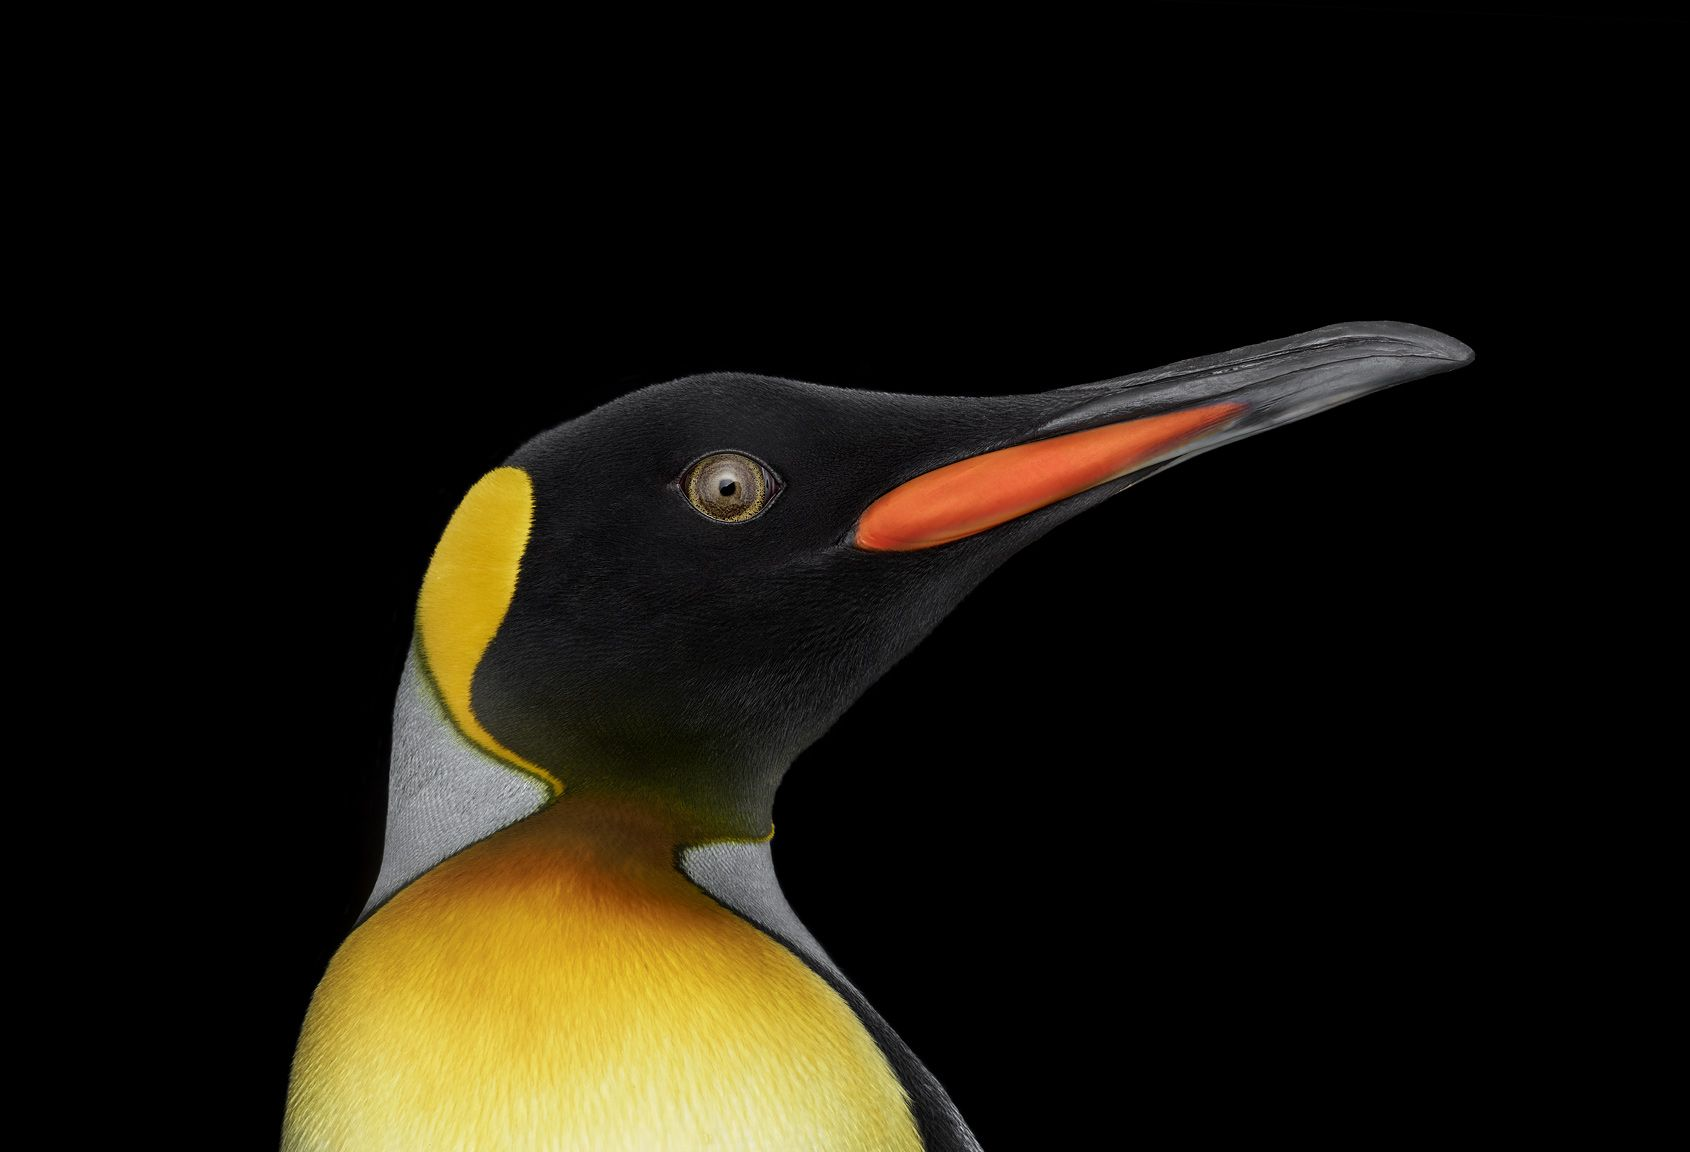 King Penguin #9, Albuquerque, New Mexico, USA, 2019